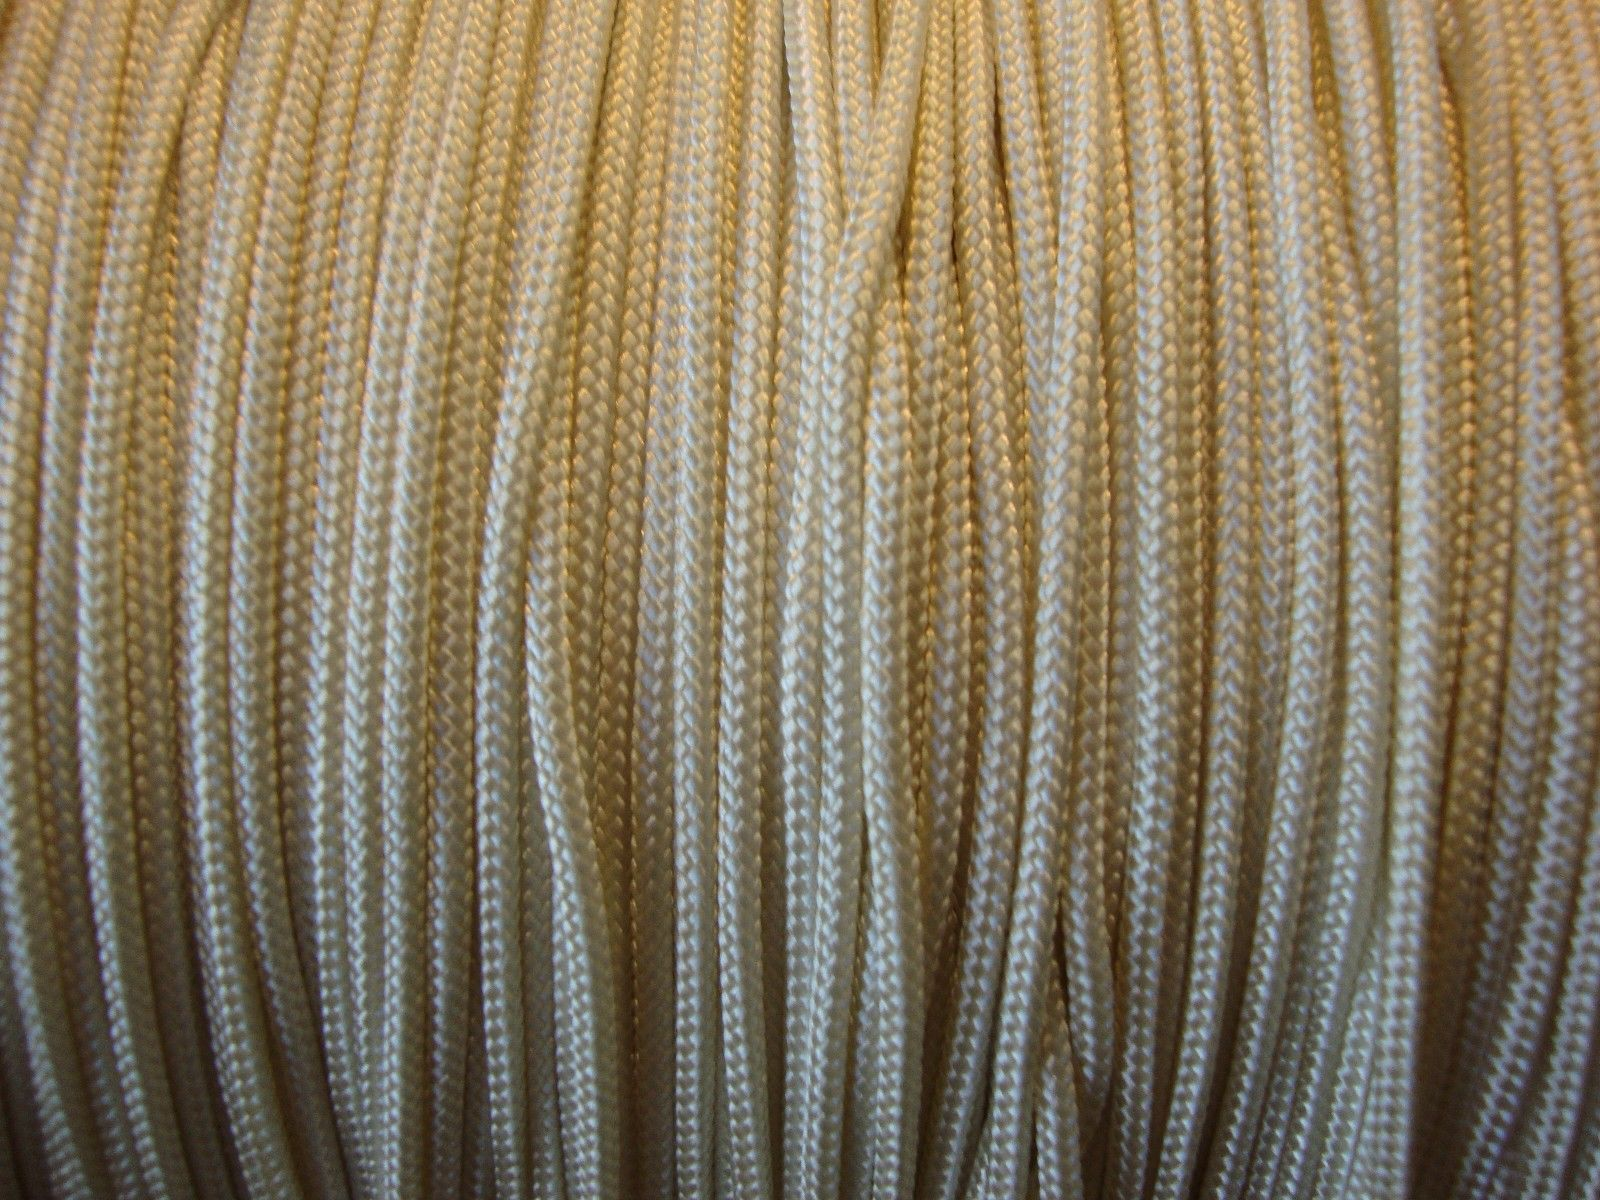 20 FEET:1.4mm ALABASTER LIFT CORD for Blinds, Roman Shades and More